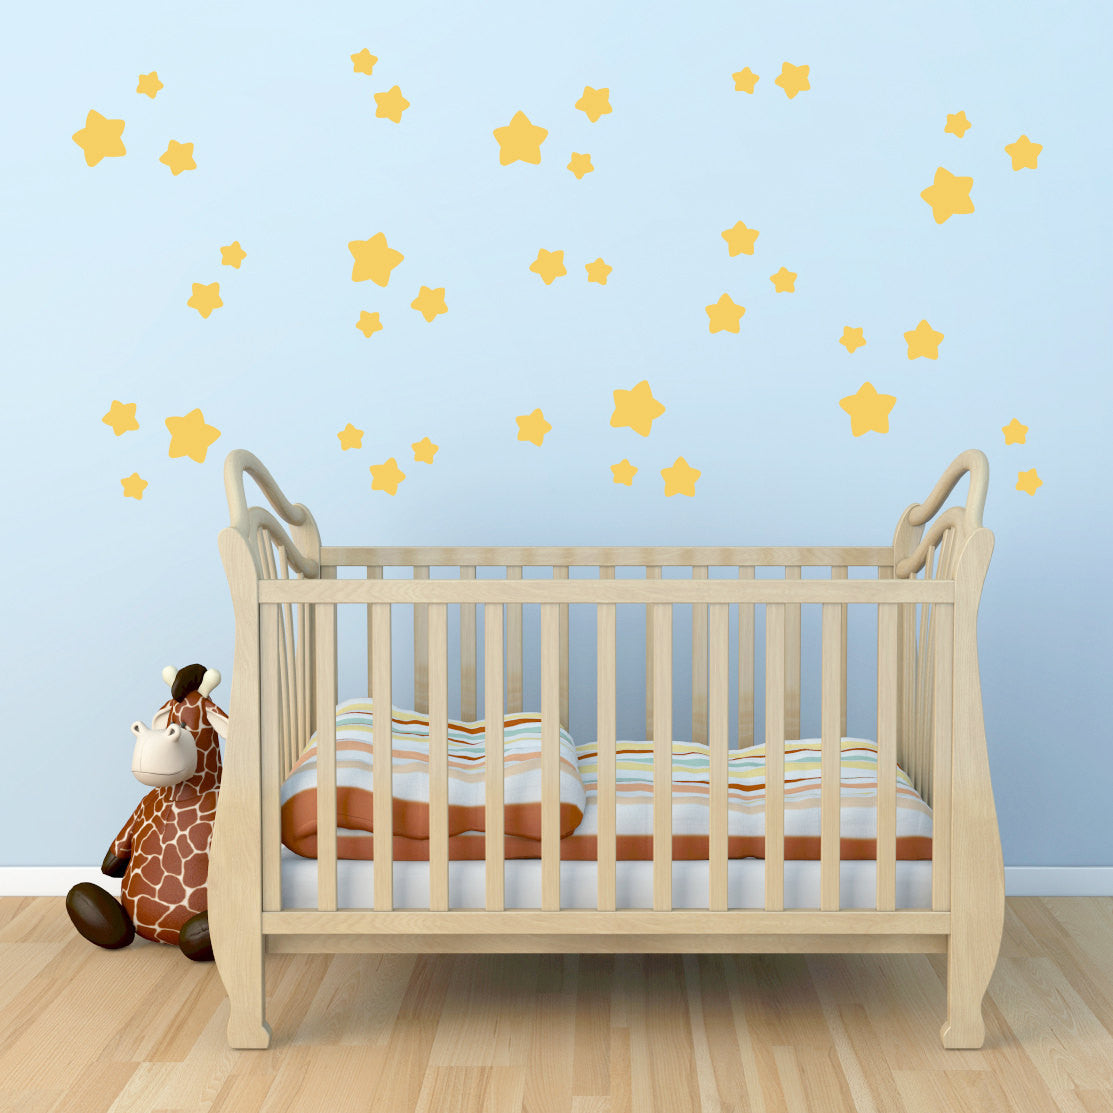 Twinkle star wall decal set of 38 stars star wall stickers twinkle star wall decal set of 38 stars star wall stickers children wall decals amipublicfo Choice Image